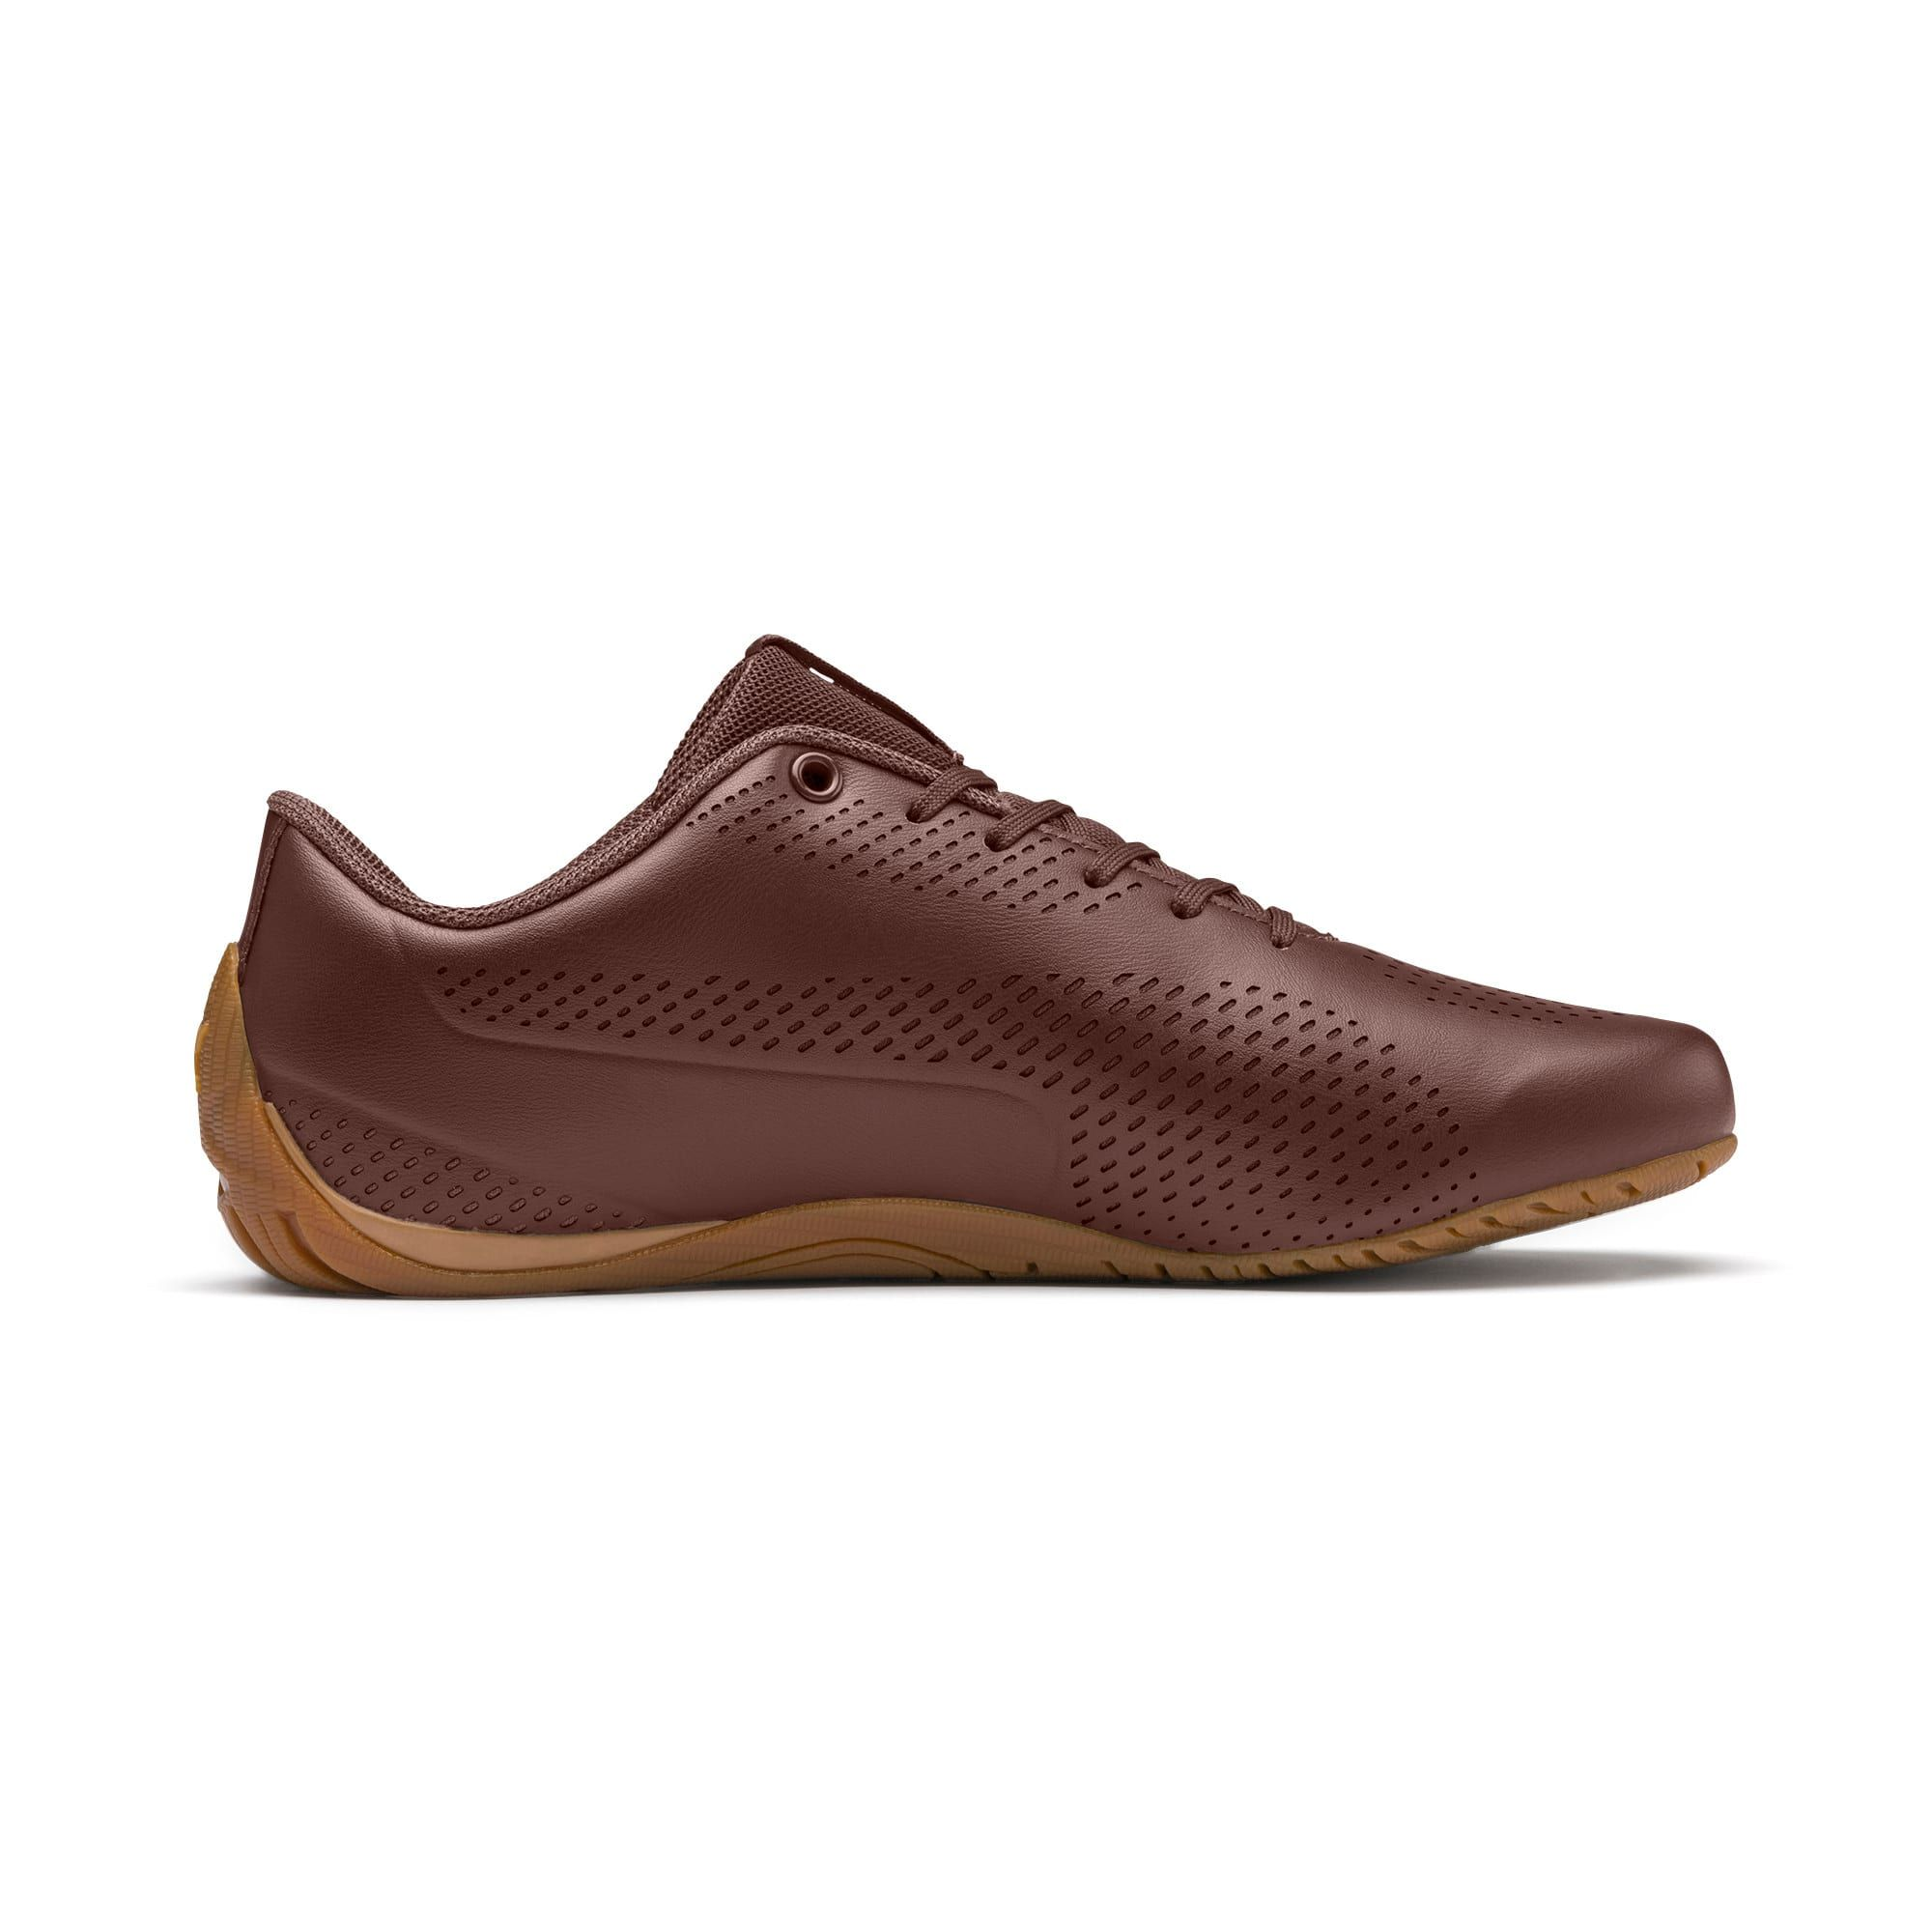 PUMA Drift Cat 5 Ultra II Trainers in Chocolate Brown/Silver ...